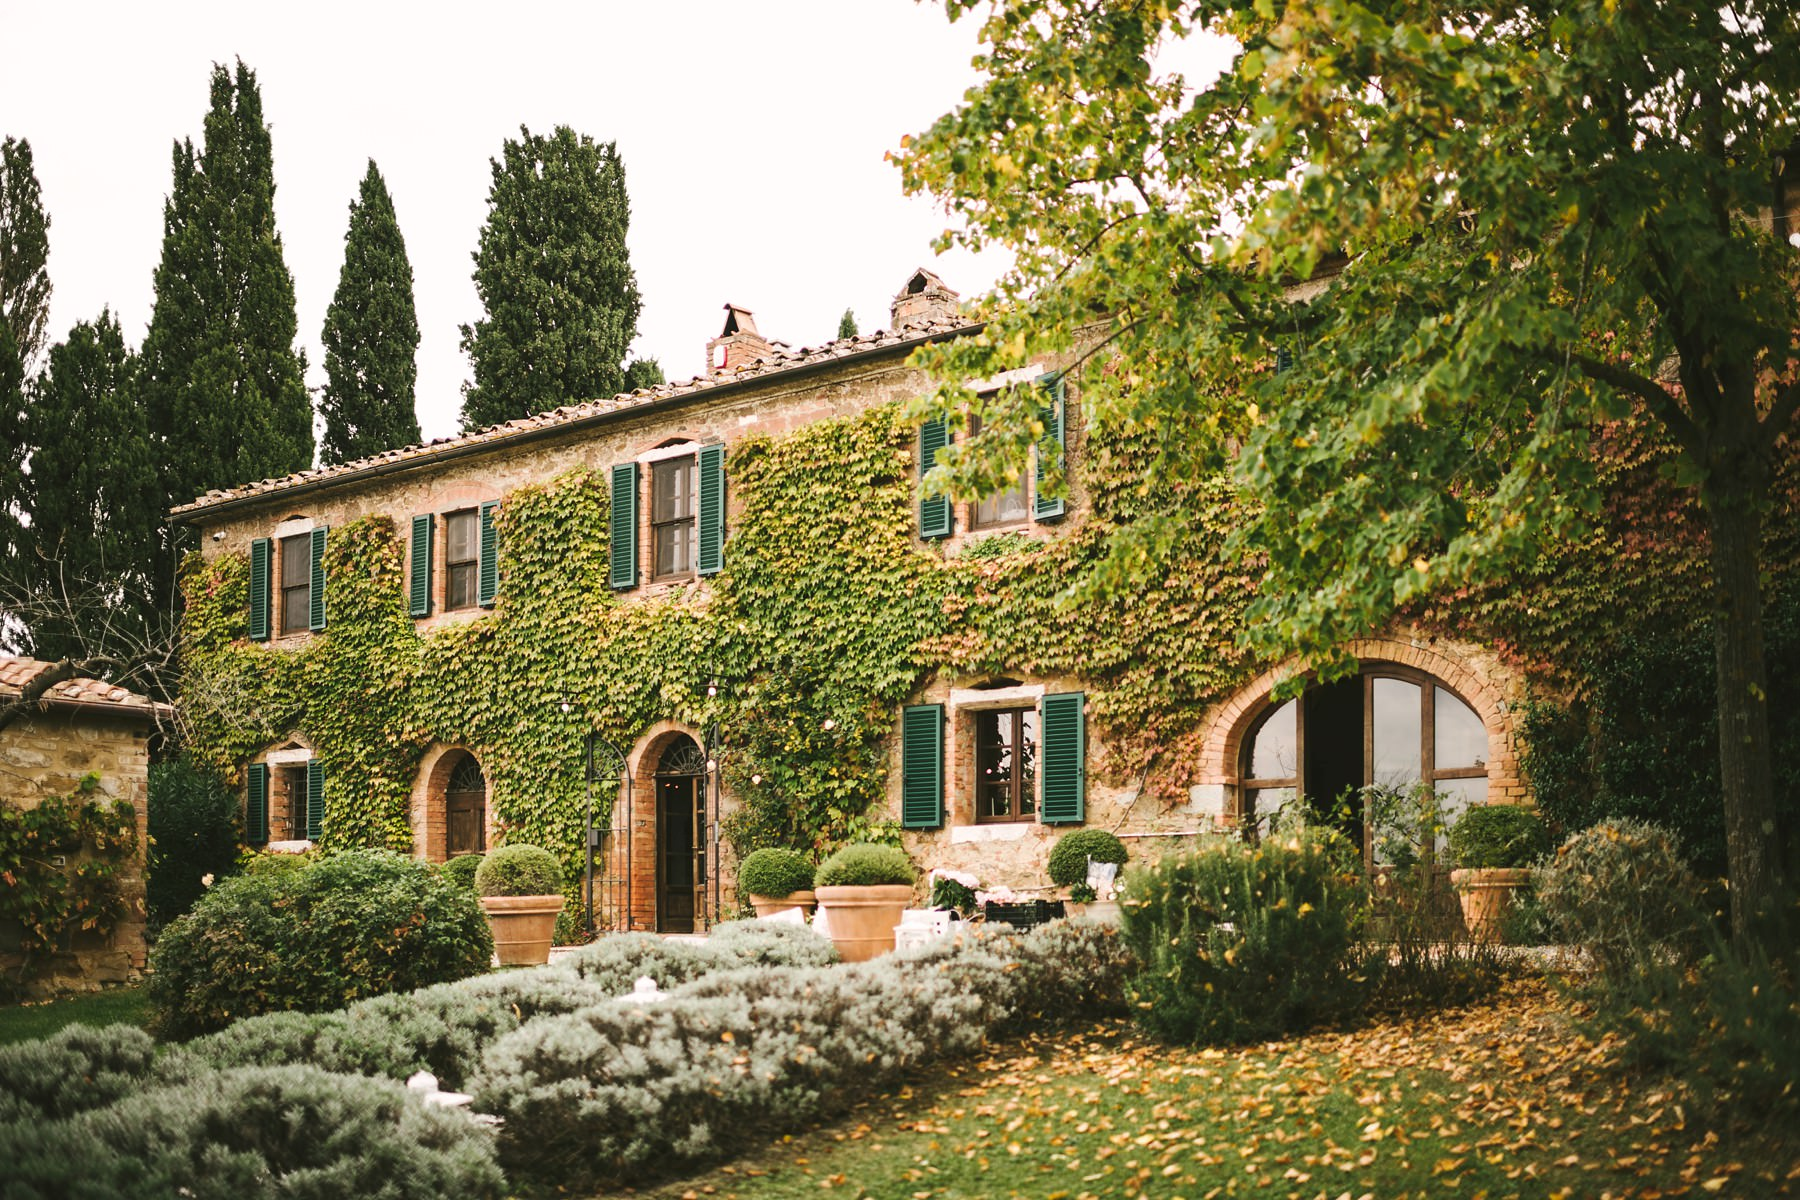 The charming La Fornace, a lovely countryhouse nested in Val d'Orcia near Montisi